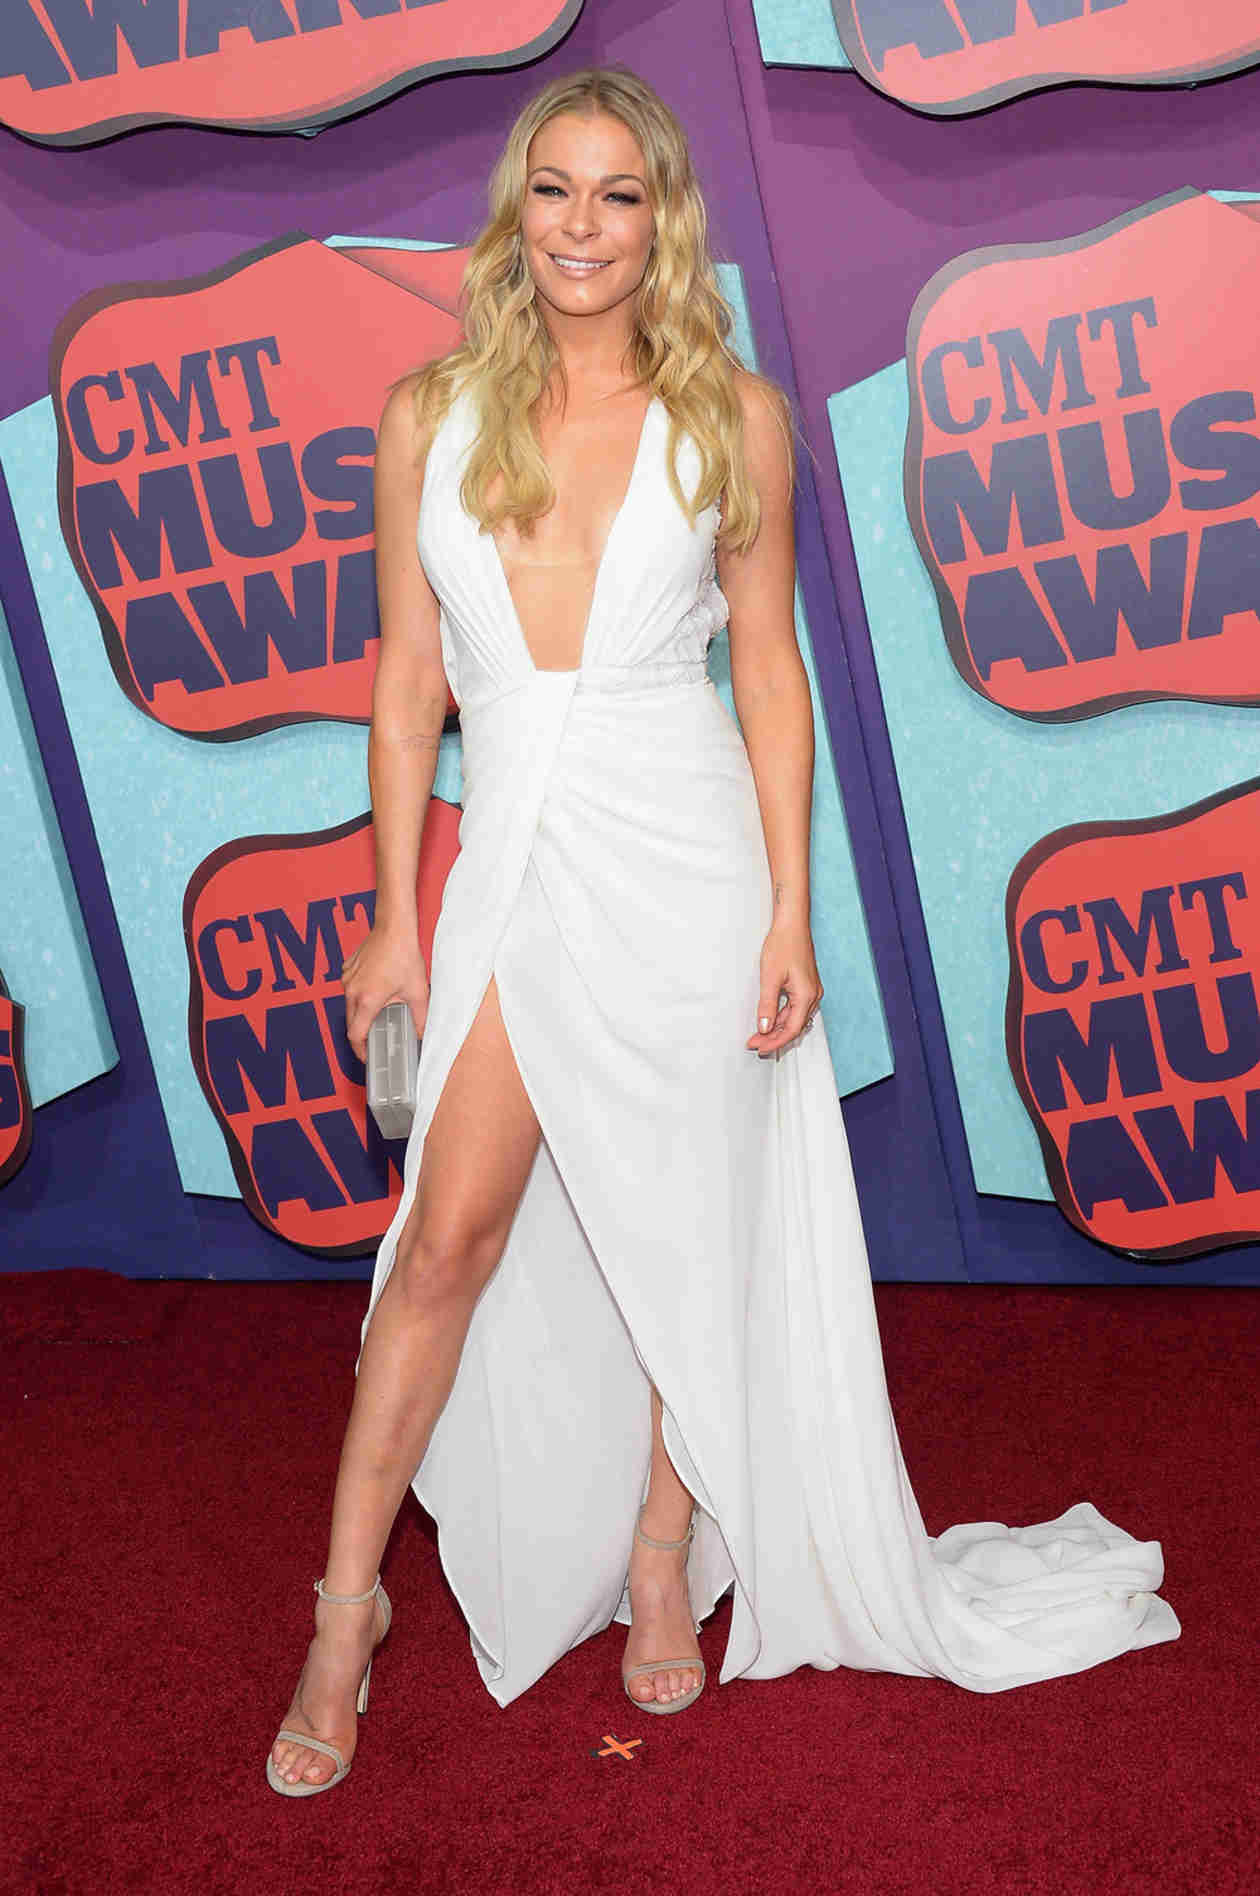 LeAnn Rimes Dishes About Launching Her Own Bikini Line!